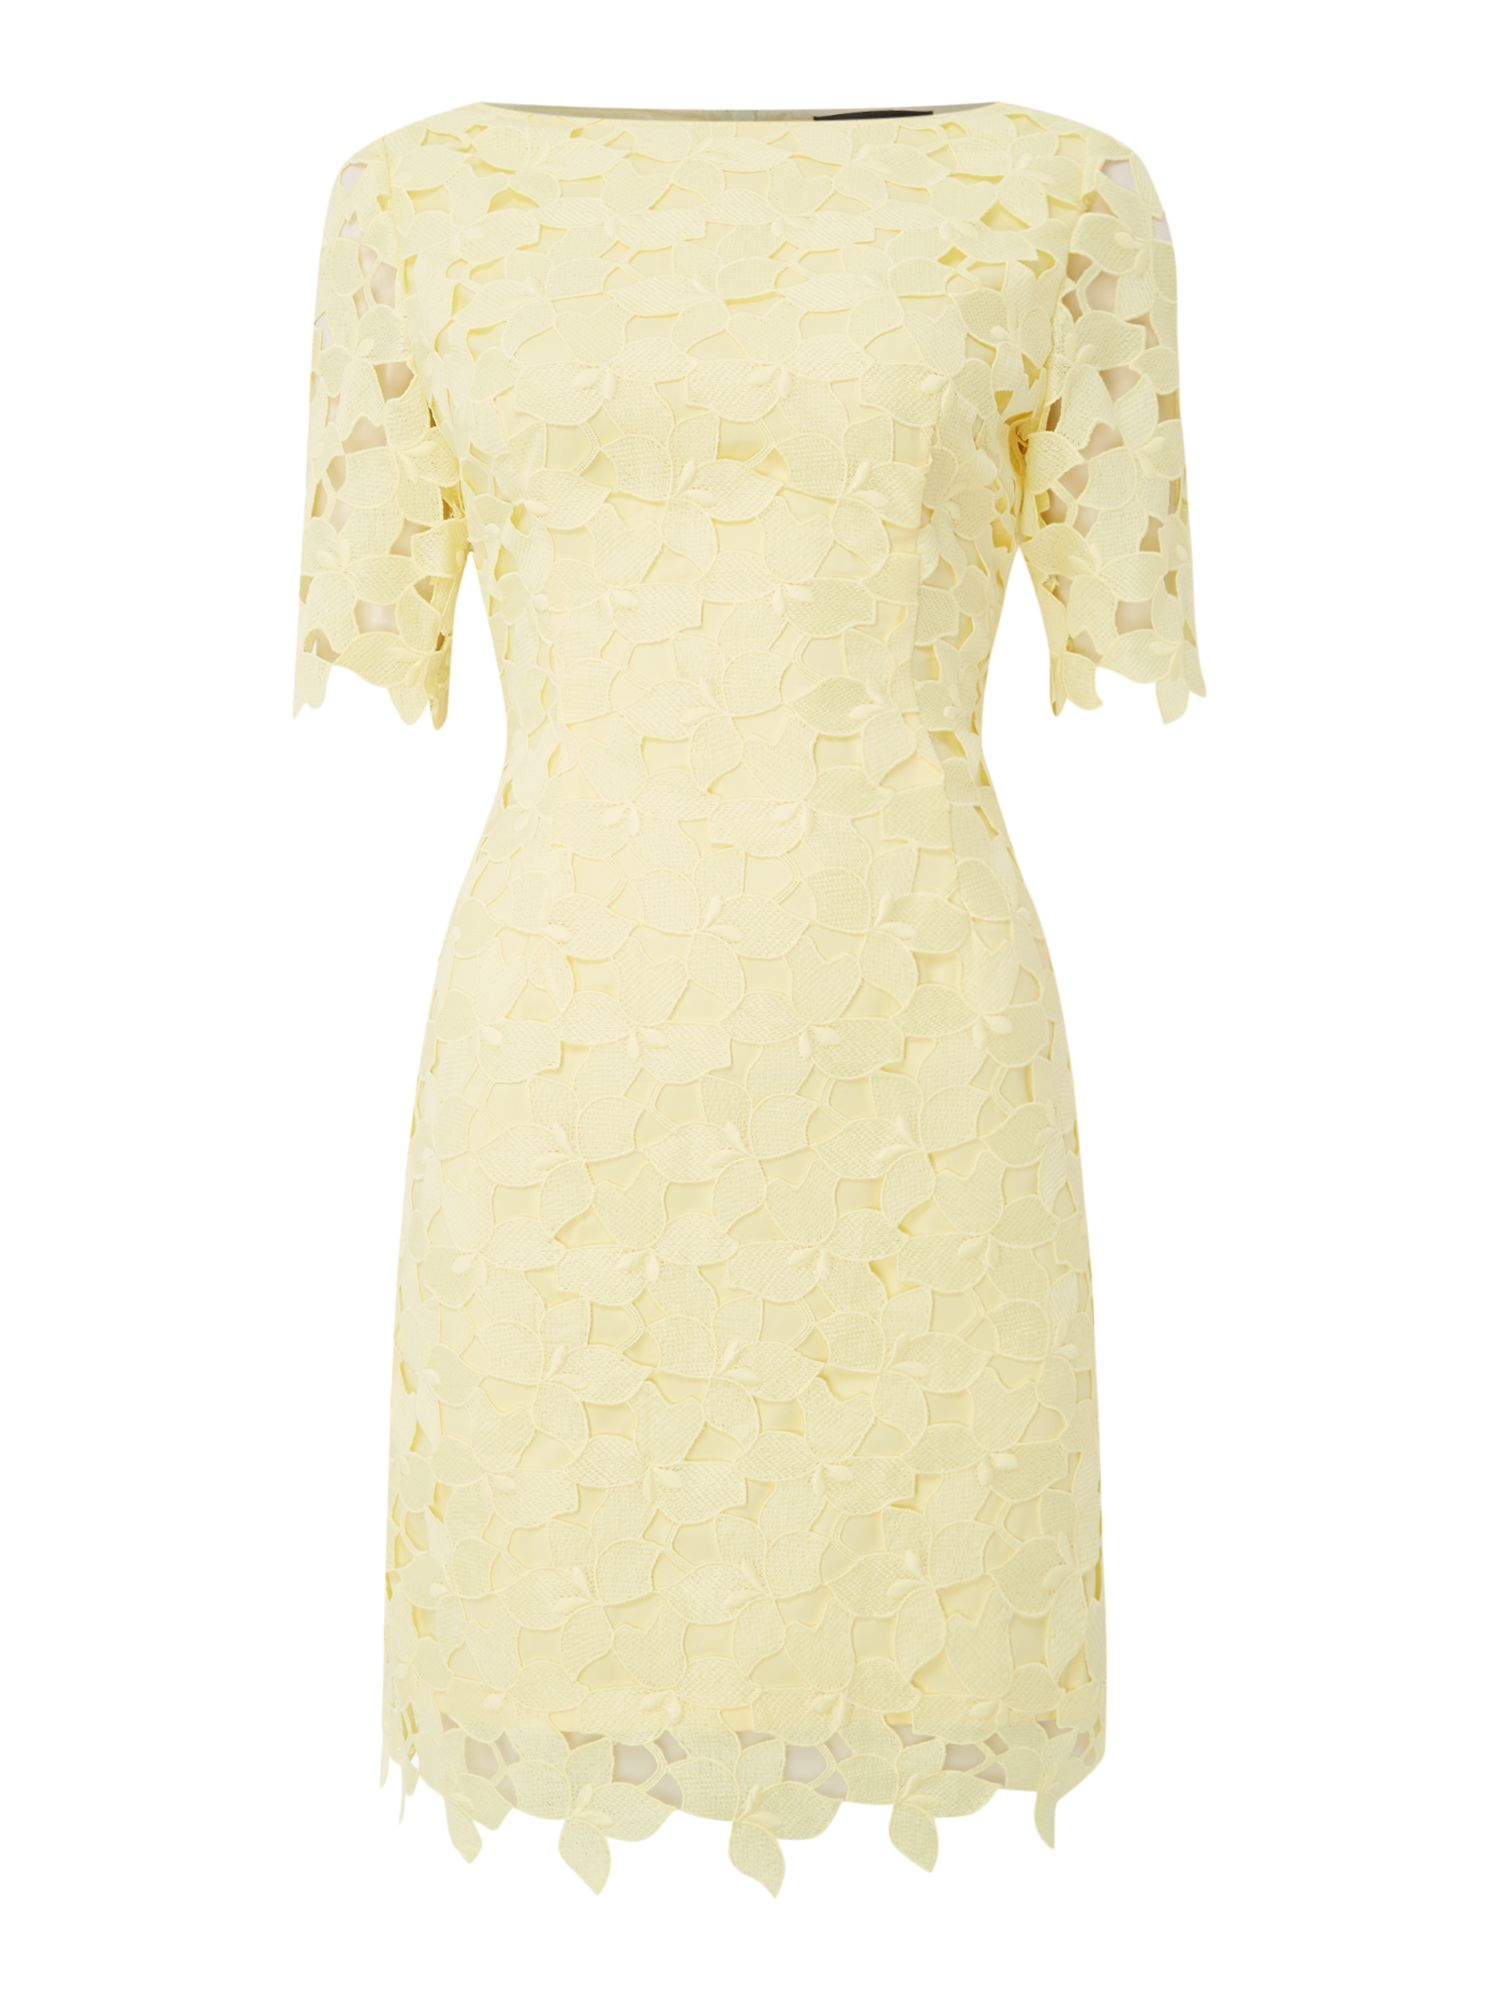 Tahari ASL Embroidered Lace Shift Dress, Yellow